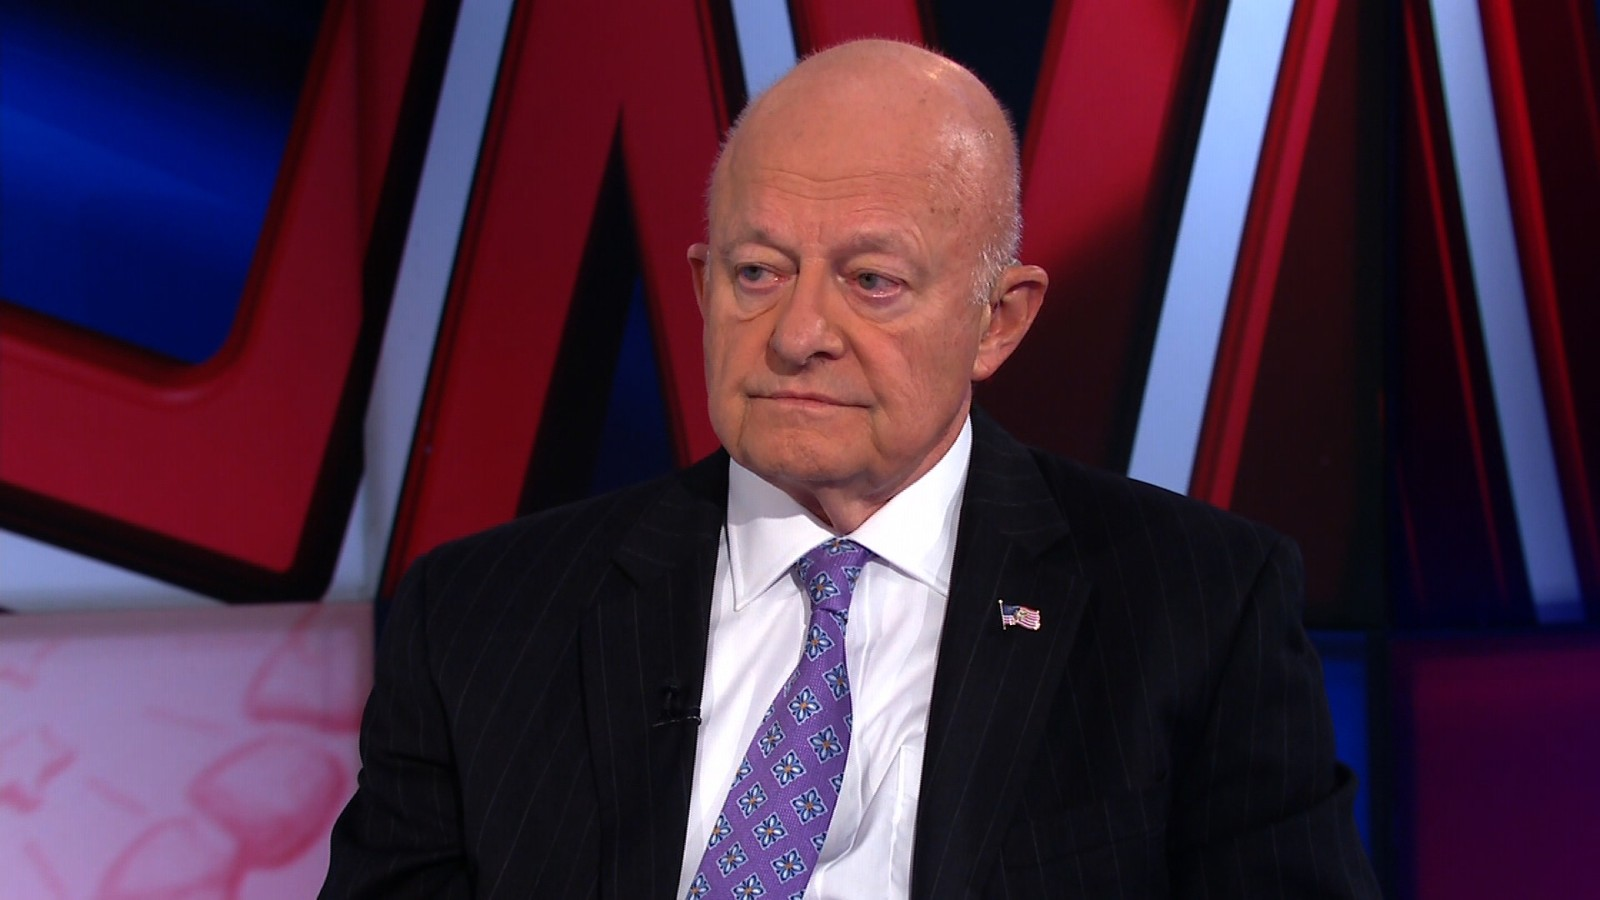 170514093101-james-clapper-institutions-assault-president-trump-sotu-00000000-full-169.jpg